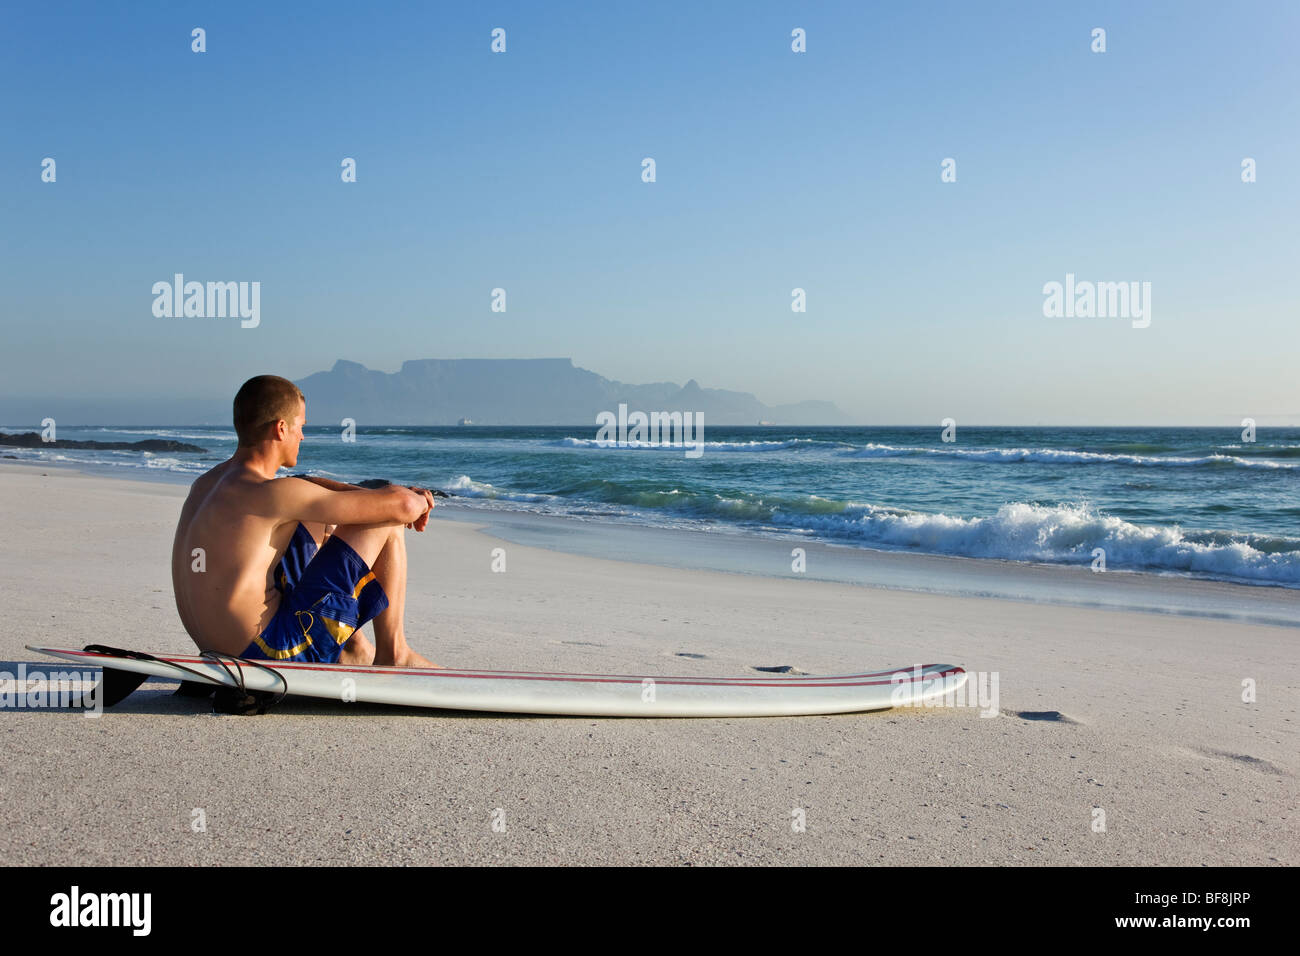 Surfer on Bloubergstrand beach with Table Mountain in background. Cape Town South Africa - Stock Image